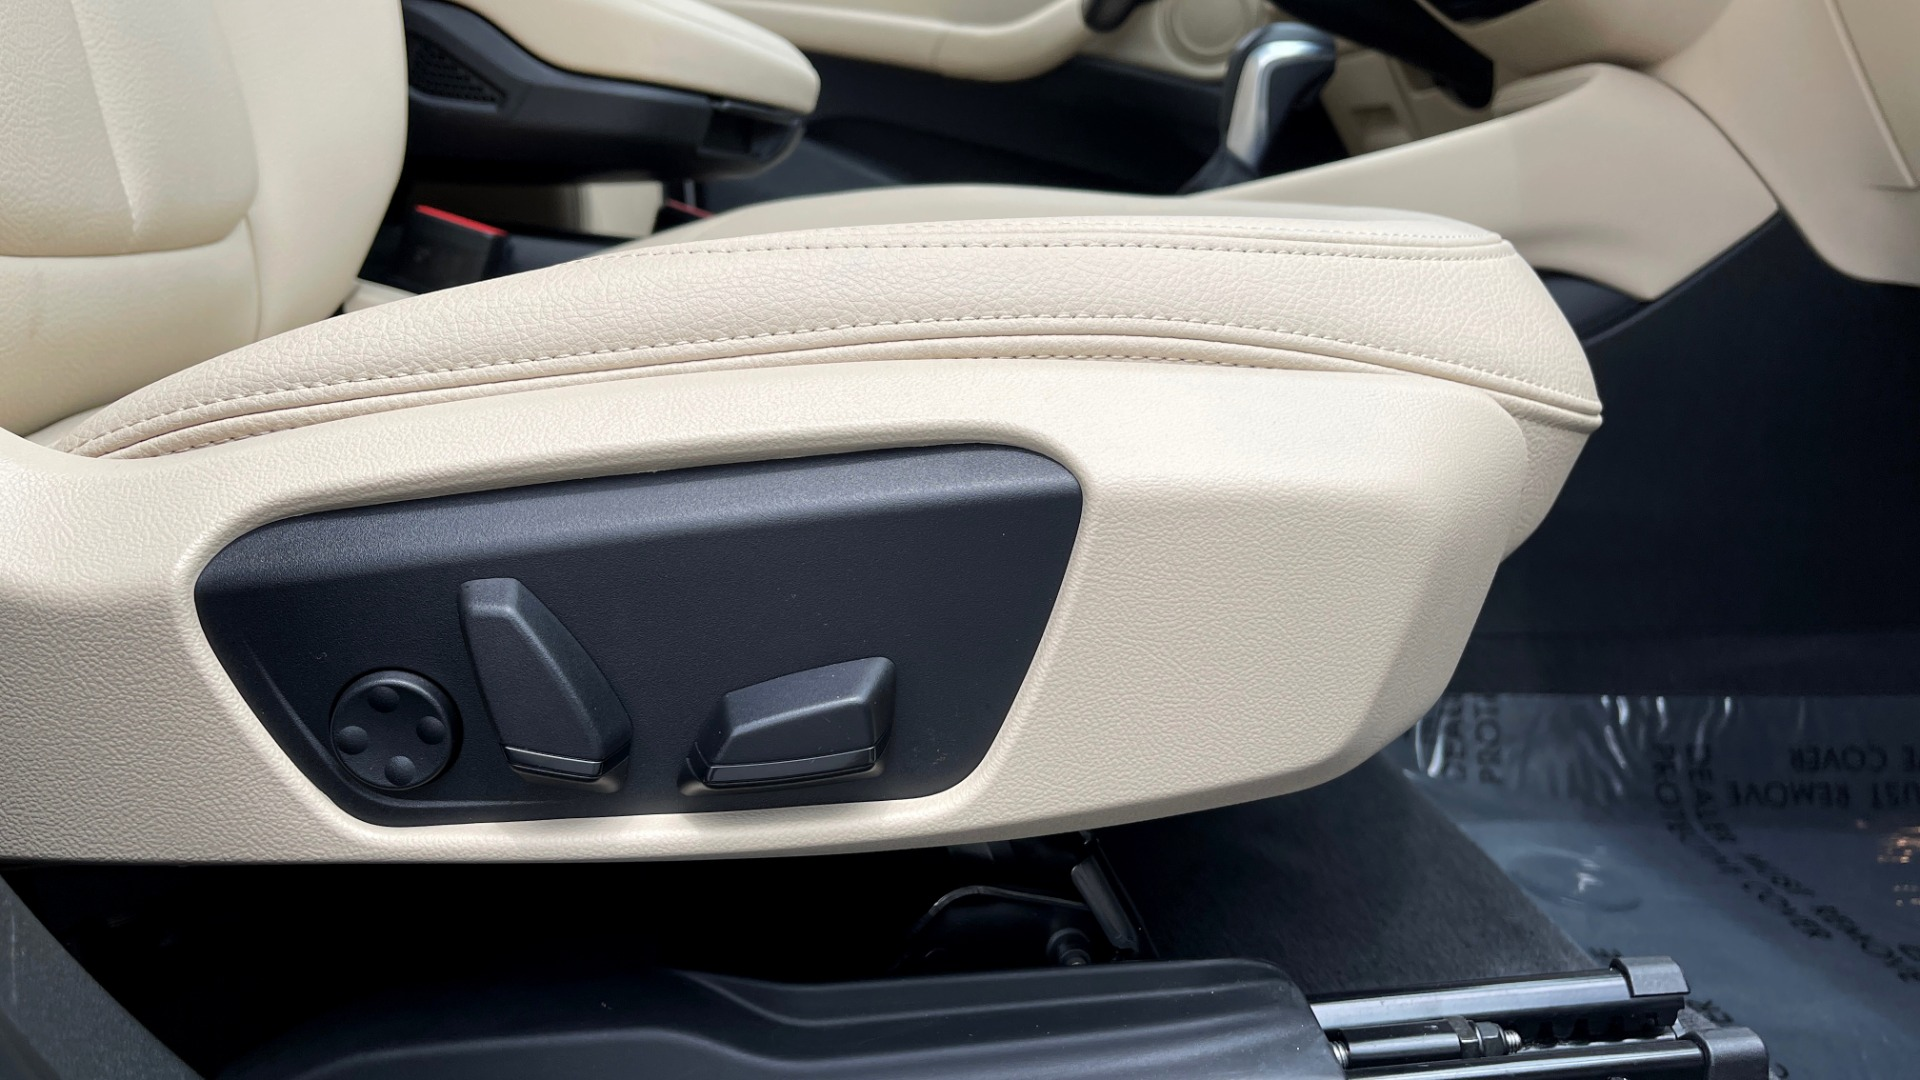 Used 2018 BMW X1 XDRIVE28I / CONV PKG / PANO-ROOF / HTD STS / PARK ASST / REARVIEW for sale $30,995 at Formula Imports in Charlotte NC 28227 81